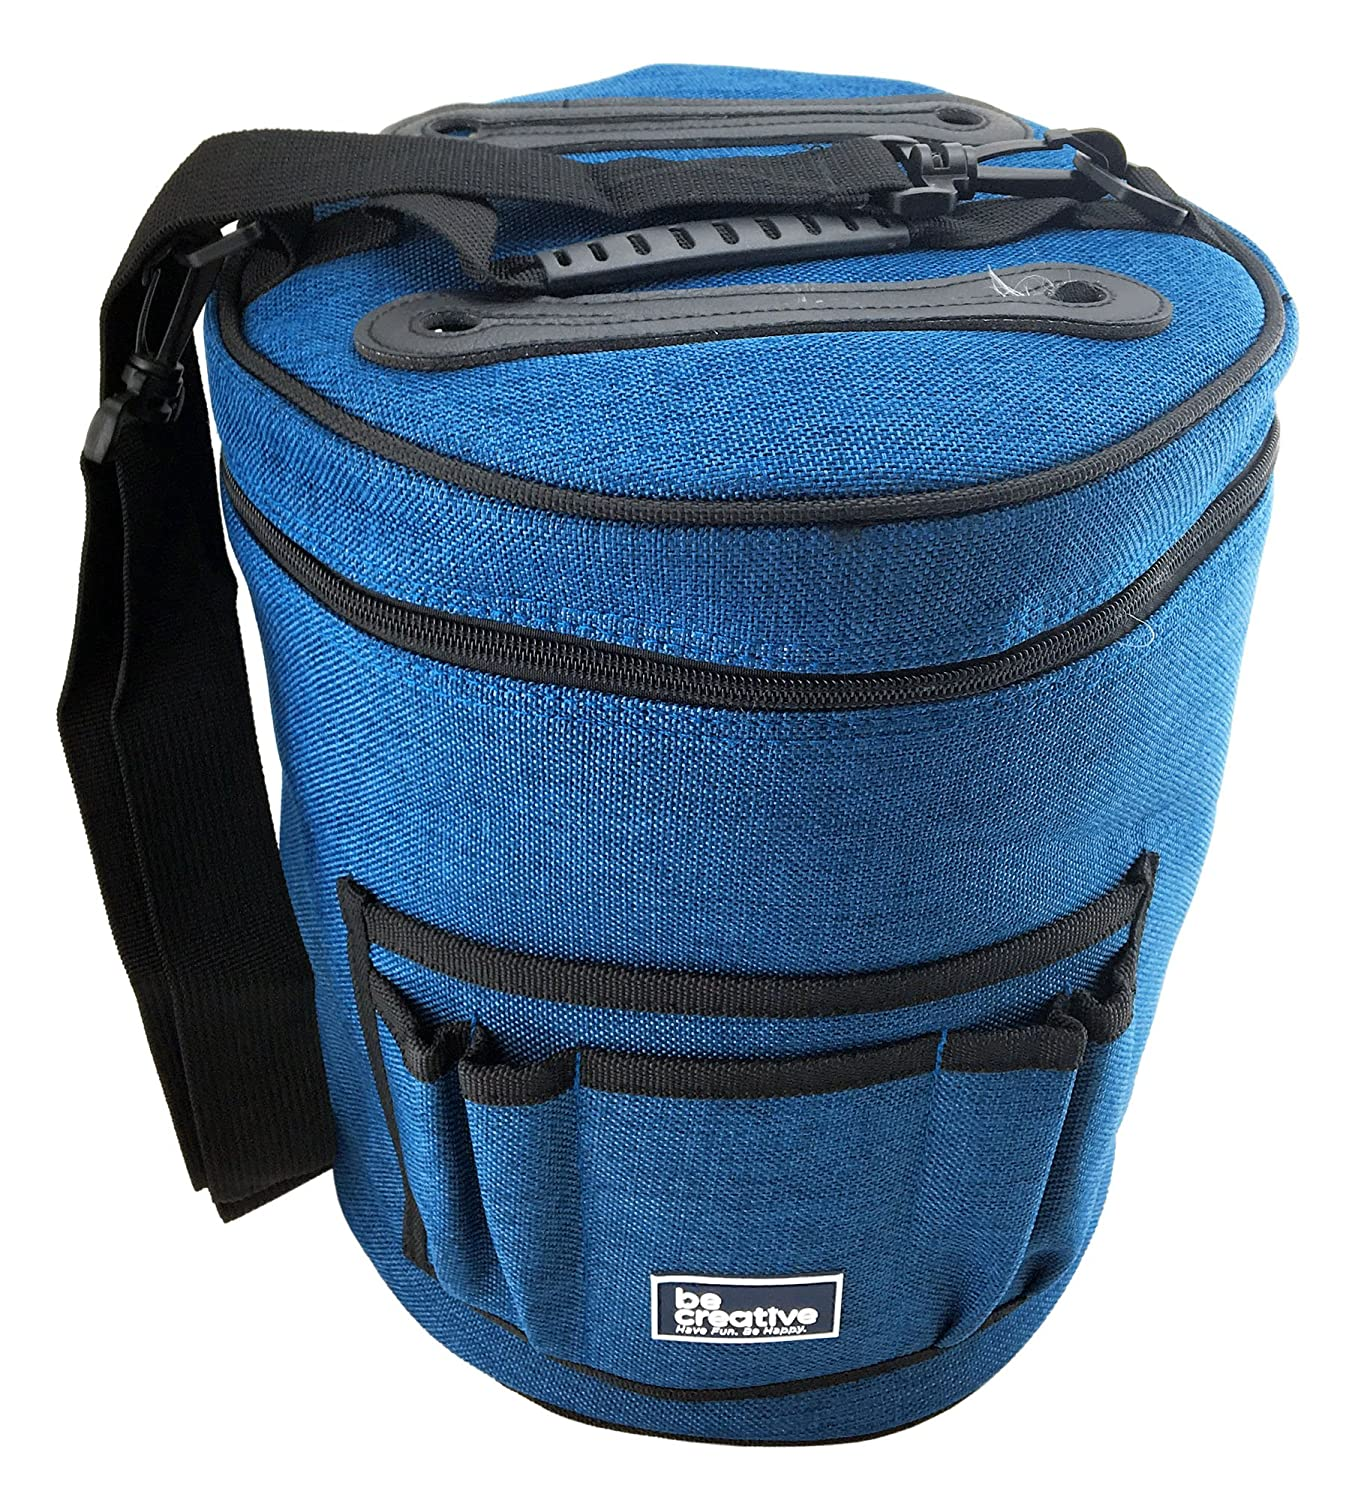 Amazon.com: BEST KNITTING BAG FOR YARN STORAGE. Portable, Light and ...